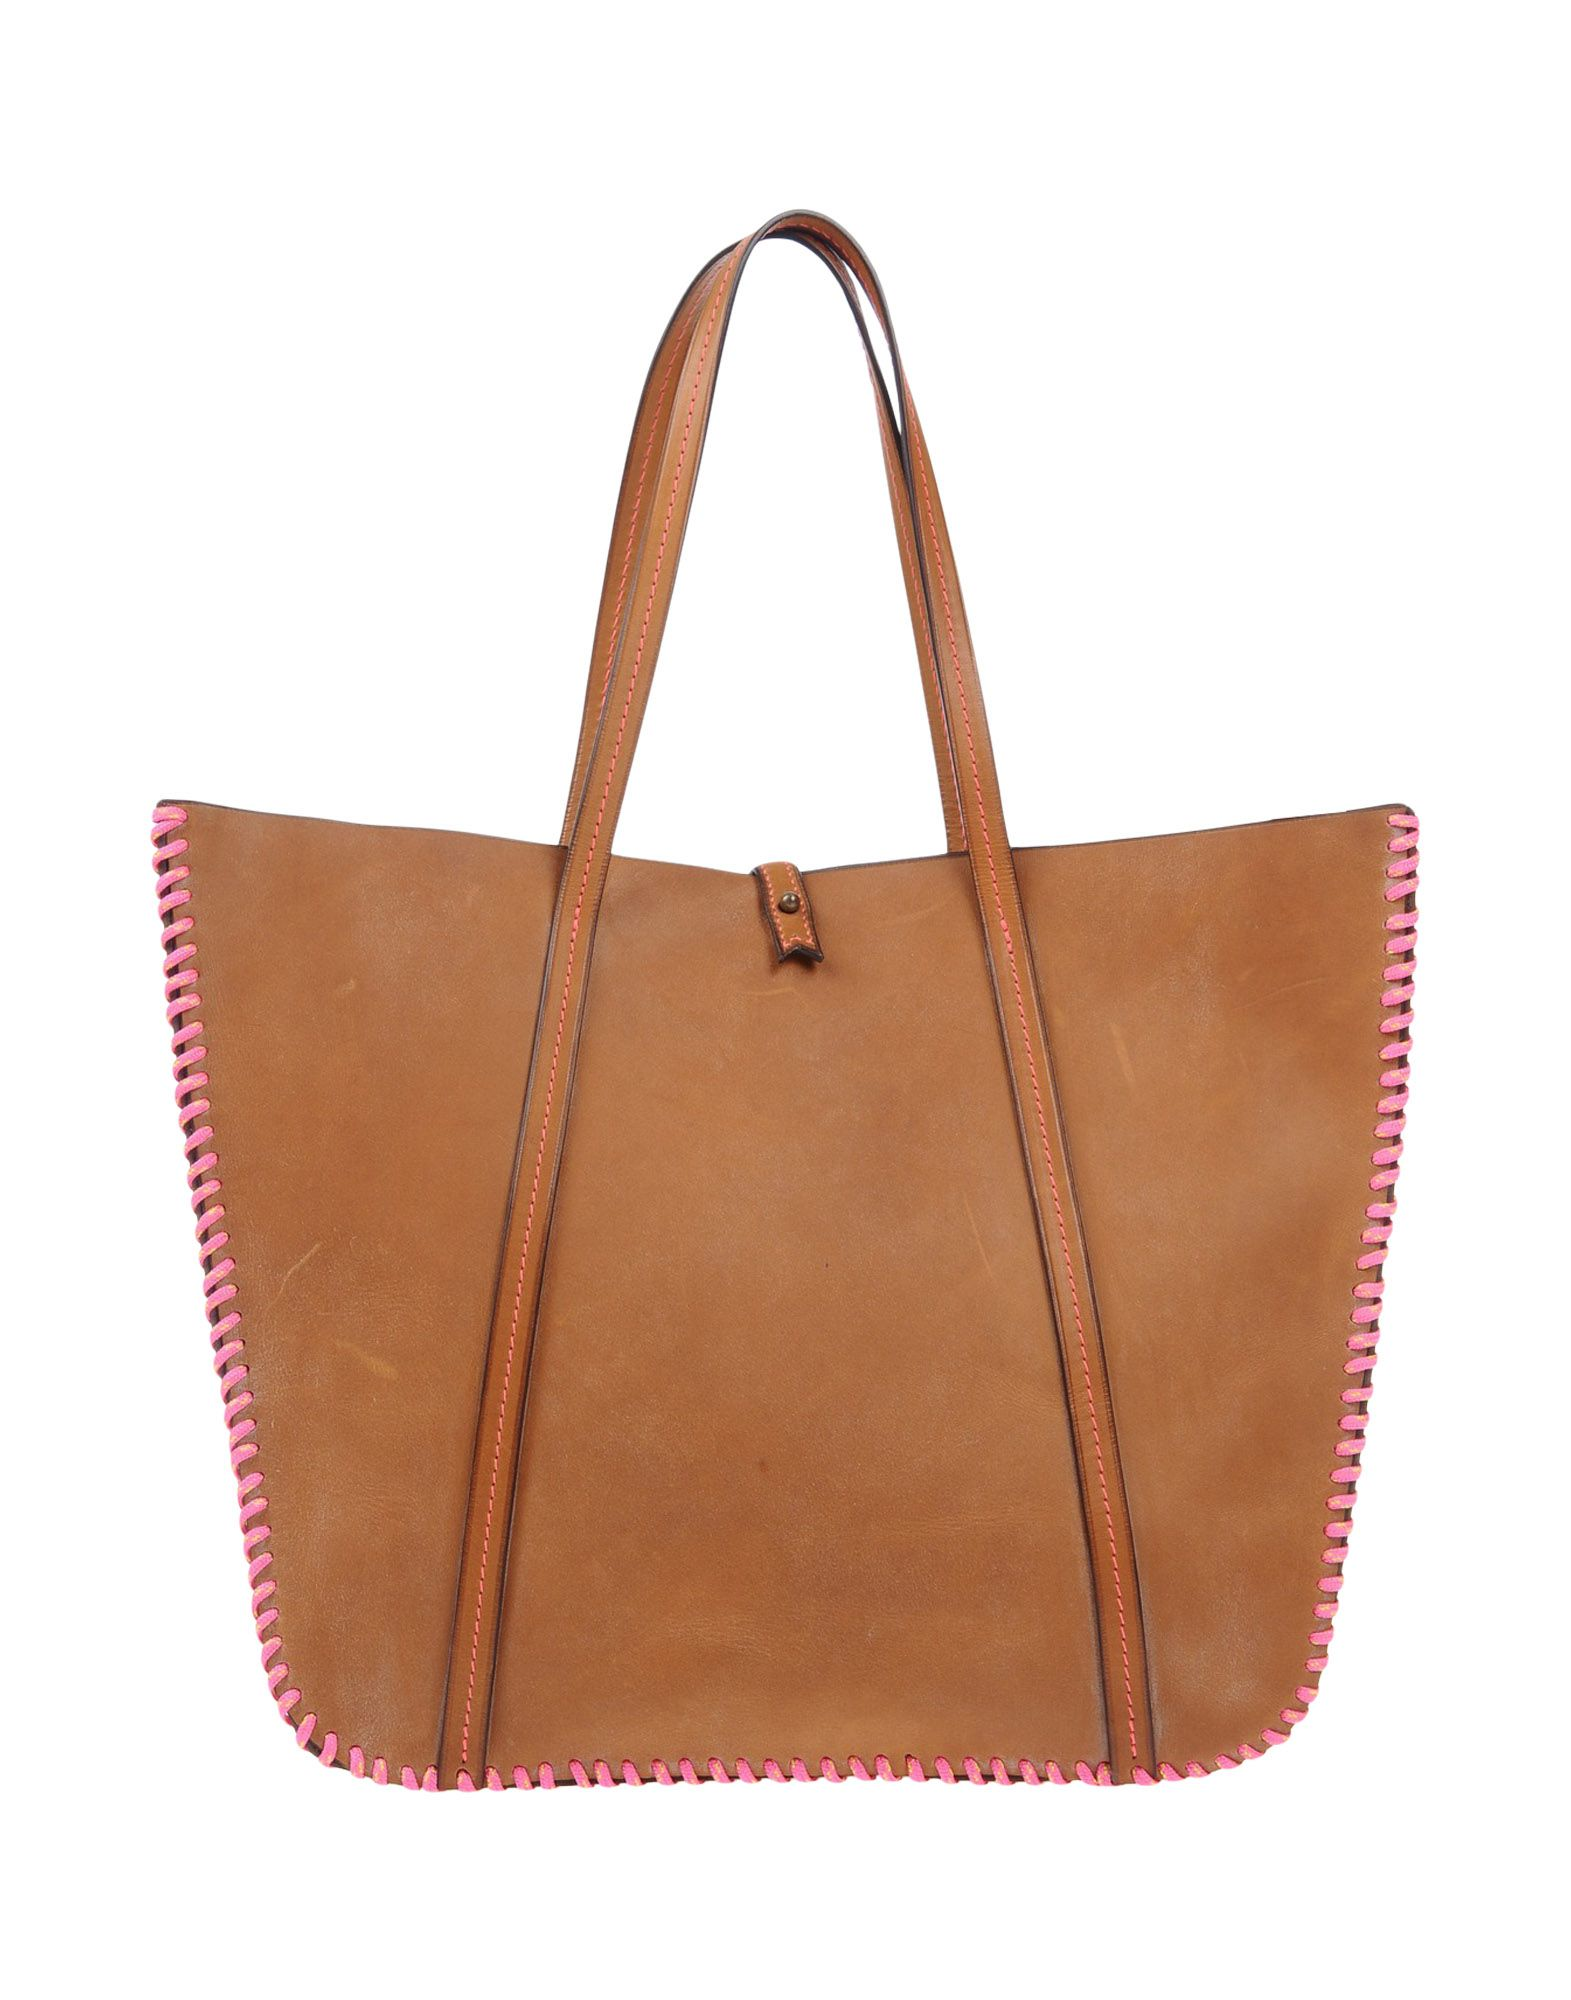 LACONTRIE Handbag in Brown